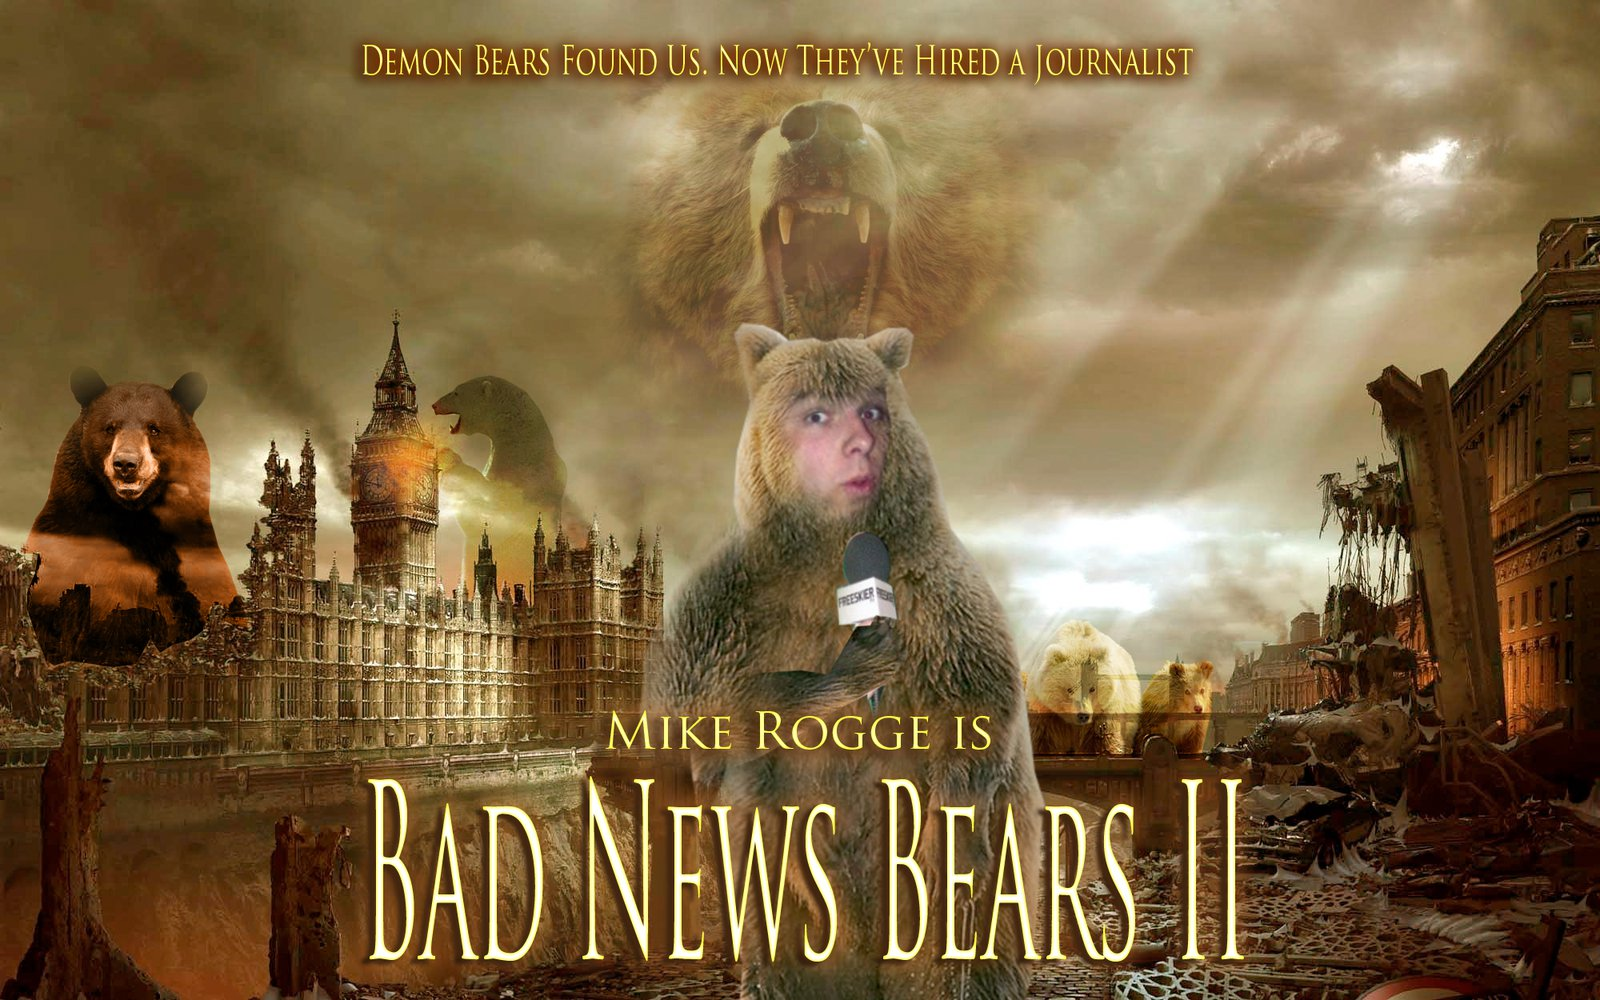 Bad News Bears wide